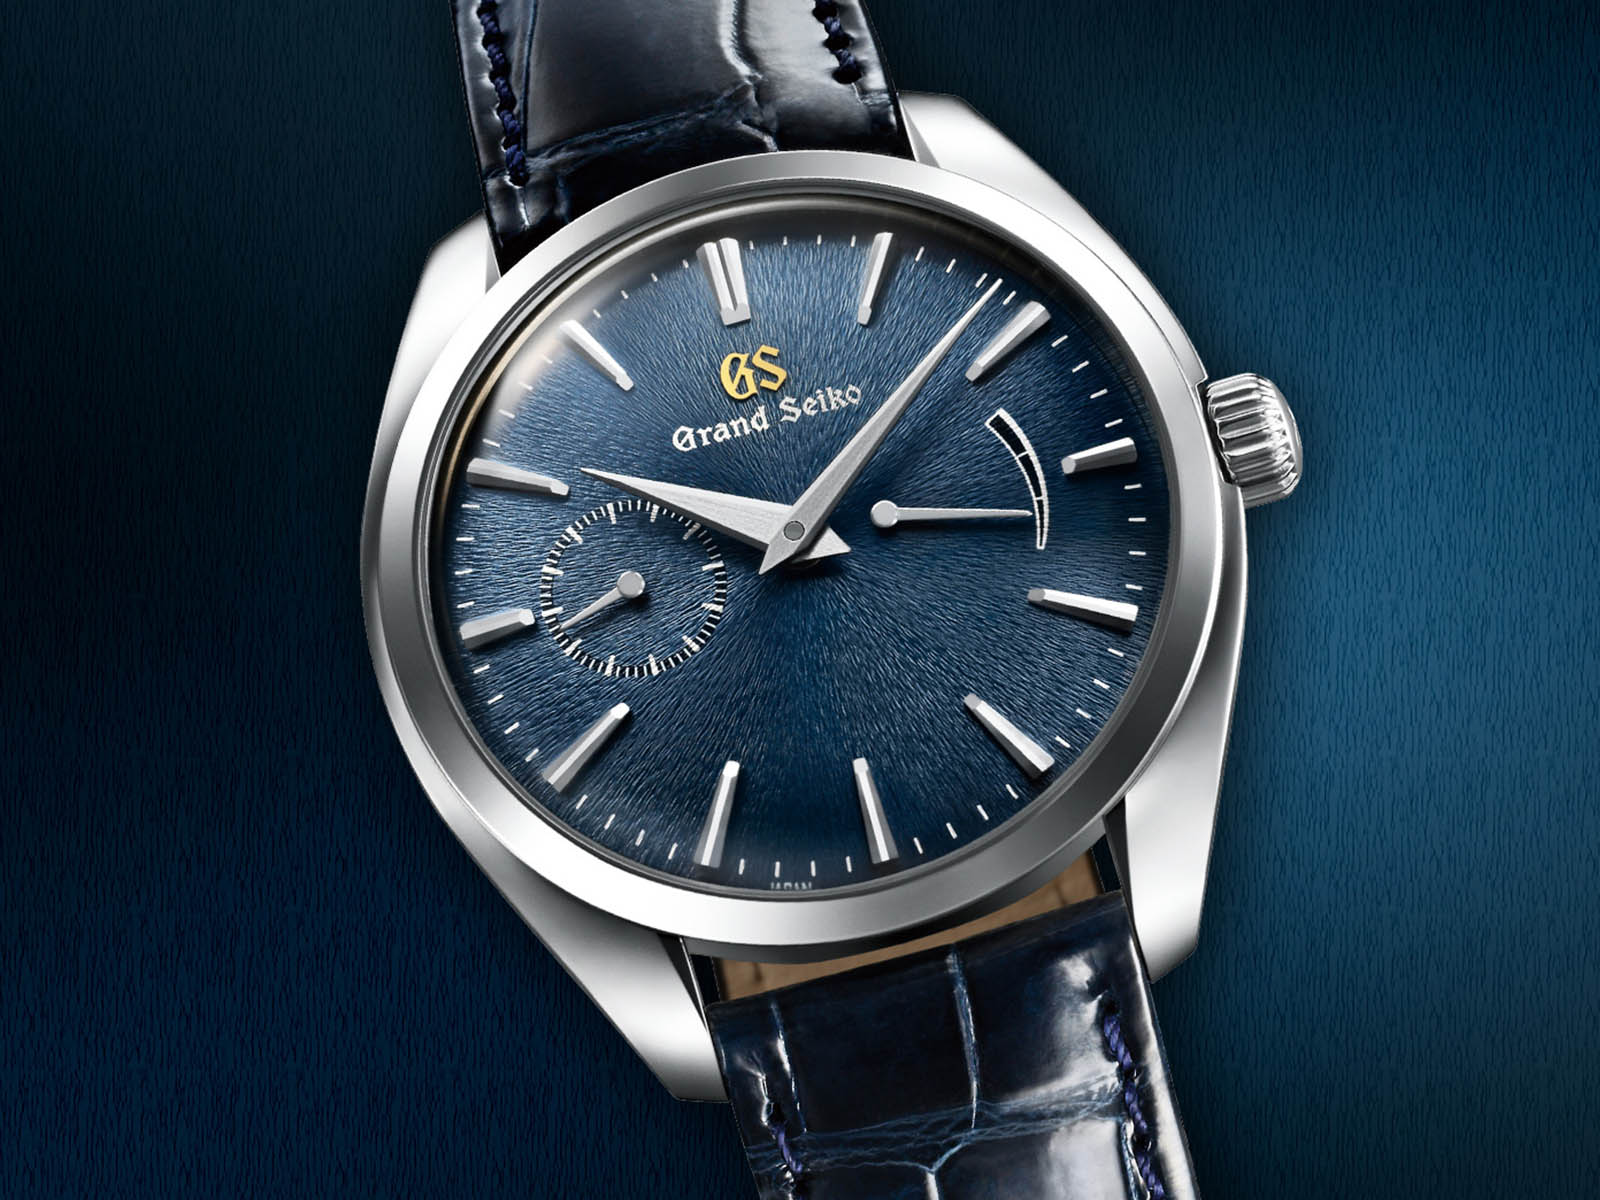 sbgk005-grand-seiko-elegance-collection-1.jpg